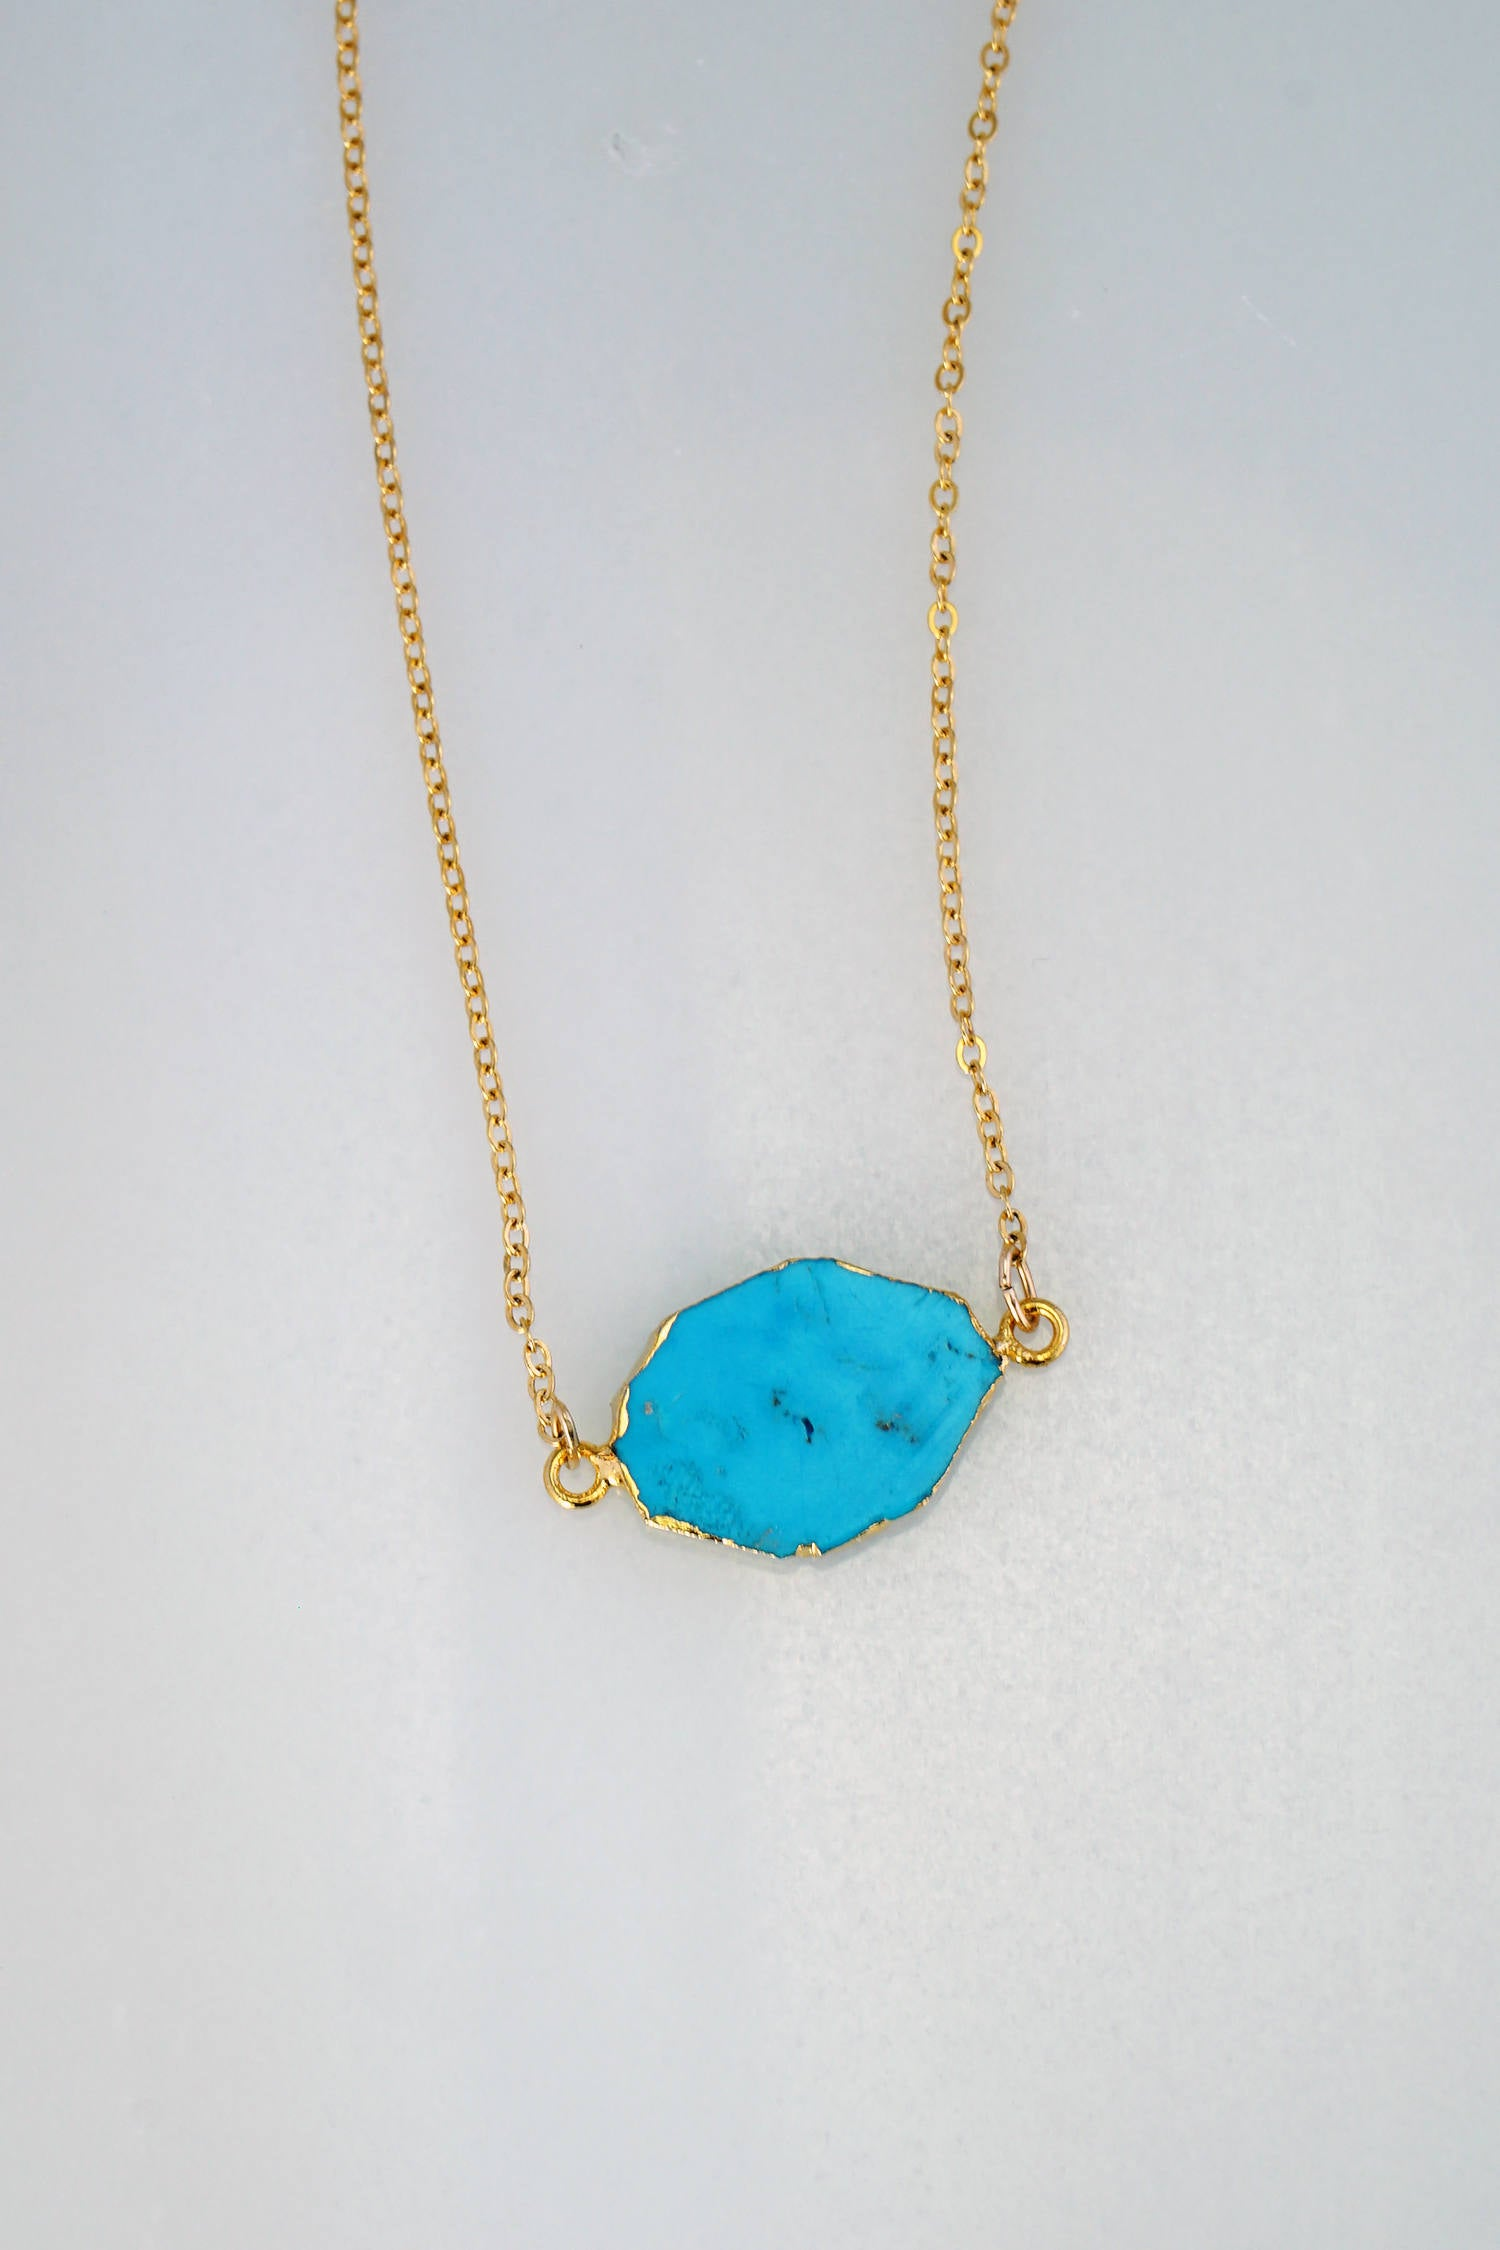 Gemstone Delicate Gold Necklace Blue Gemstone Necklace Christmas gift for wife December Birthstone Necklace Turquoise Delicate Necklace